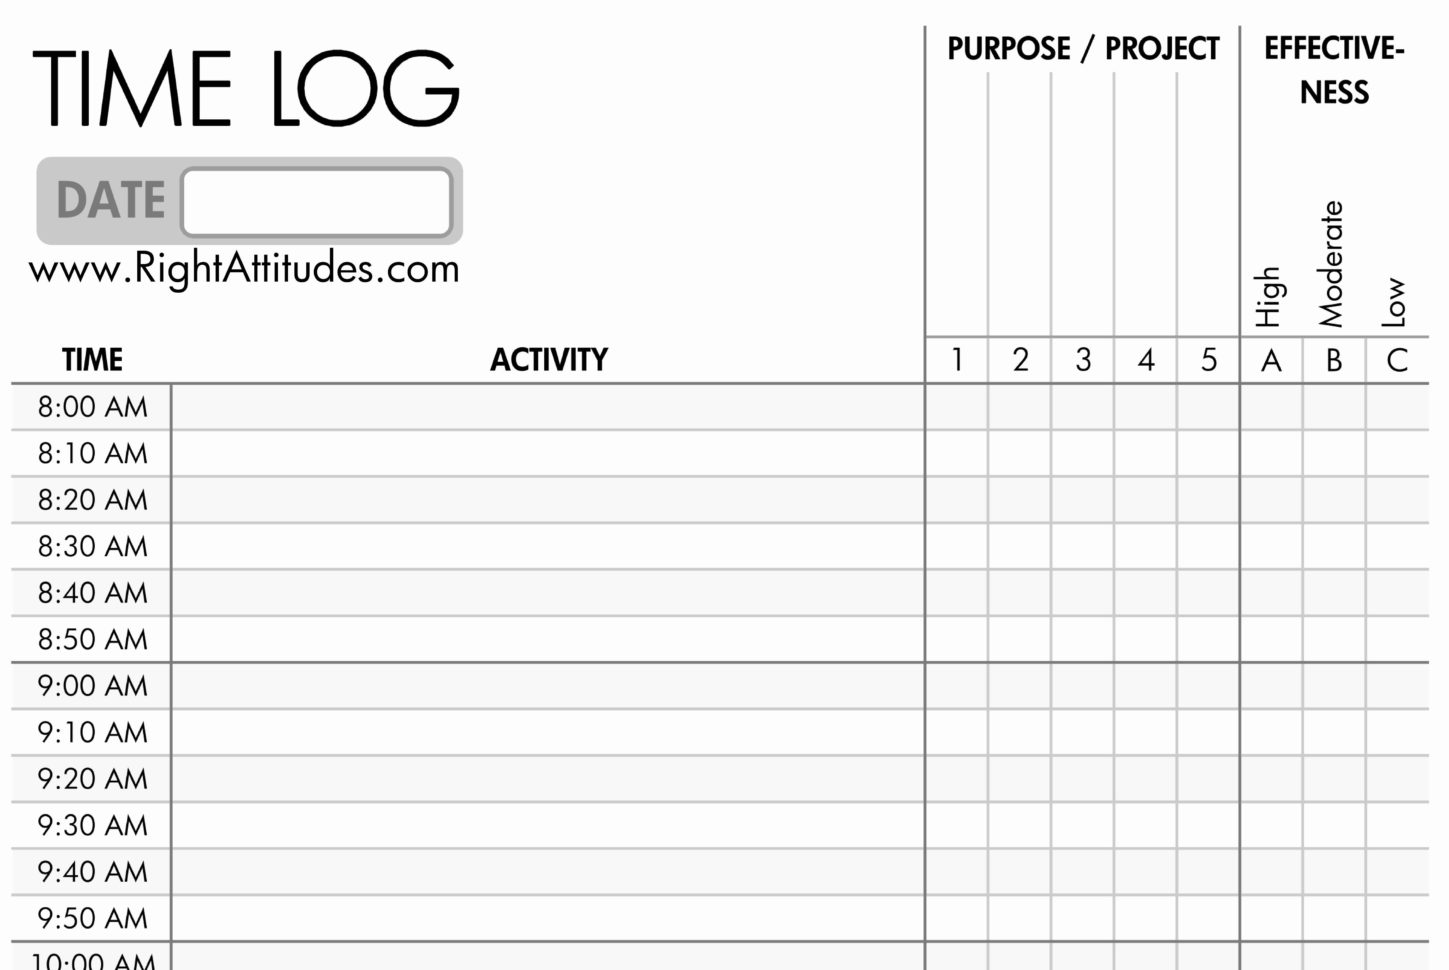 Comp Time Tracking Spreadsheet Download Intended For Comp Time Tracking Spreadsheet Download Project Template Employee